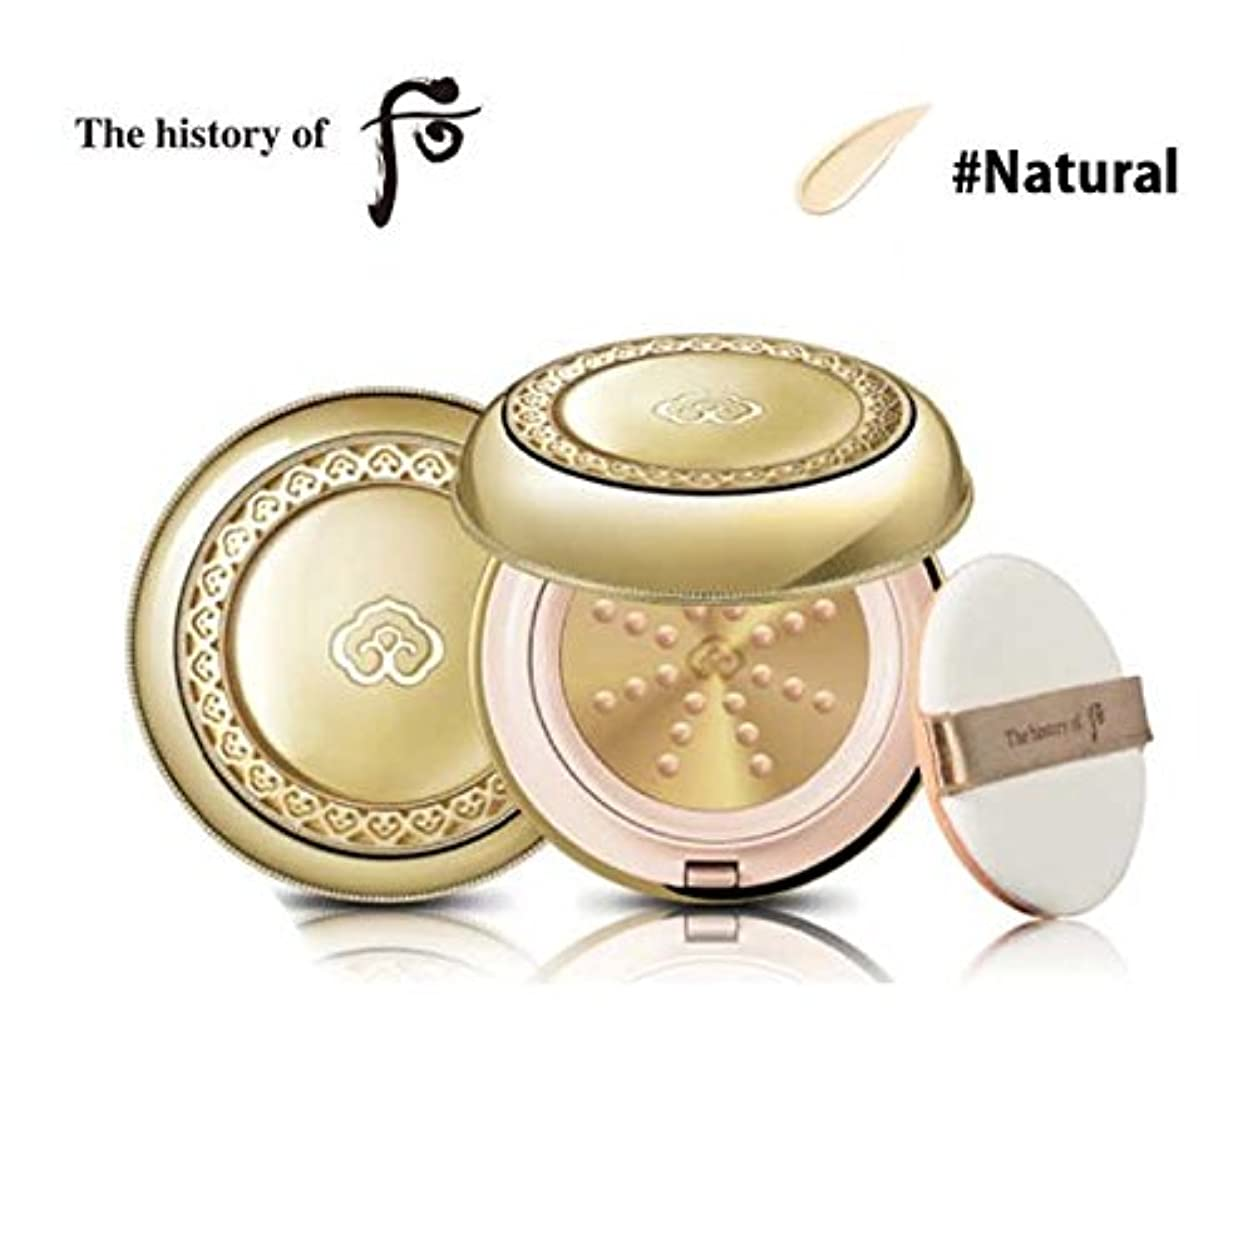 ふざけた糞内なる【フー/The history of whoo] Whoo 后 Jin Hae Yoon Sun Cushion #Natural/后(フー) 線クッション [SPF50+/PA+++] + [Sample Gift](...